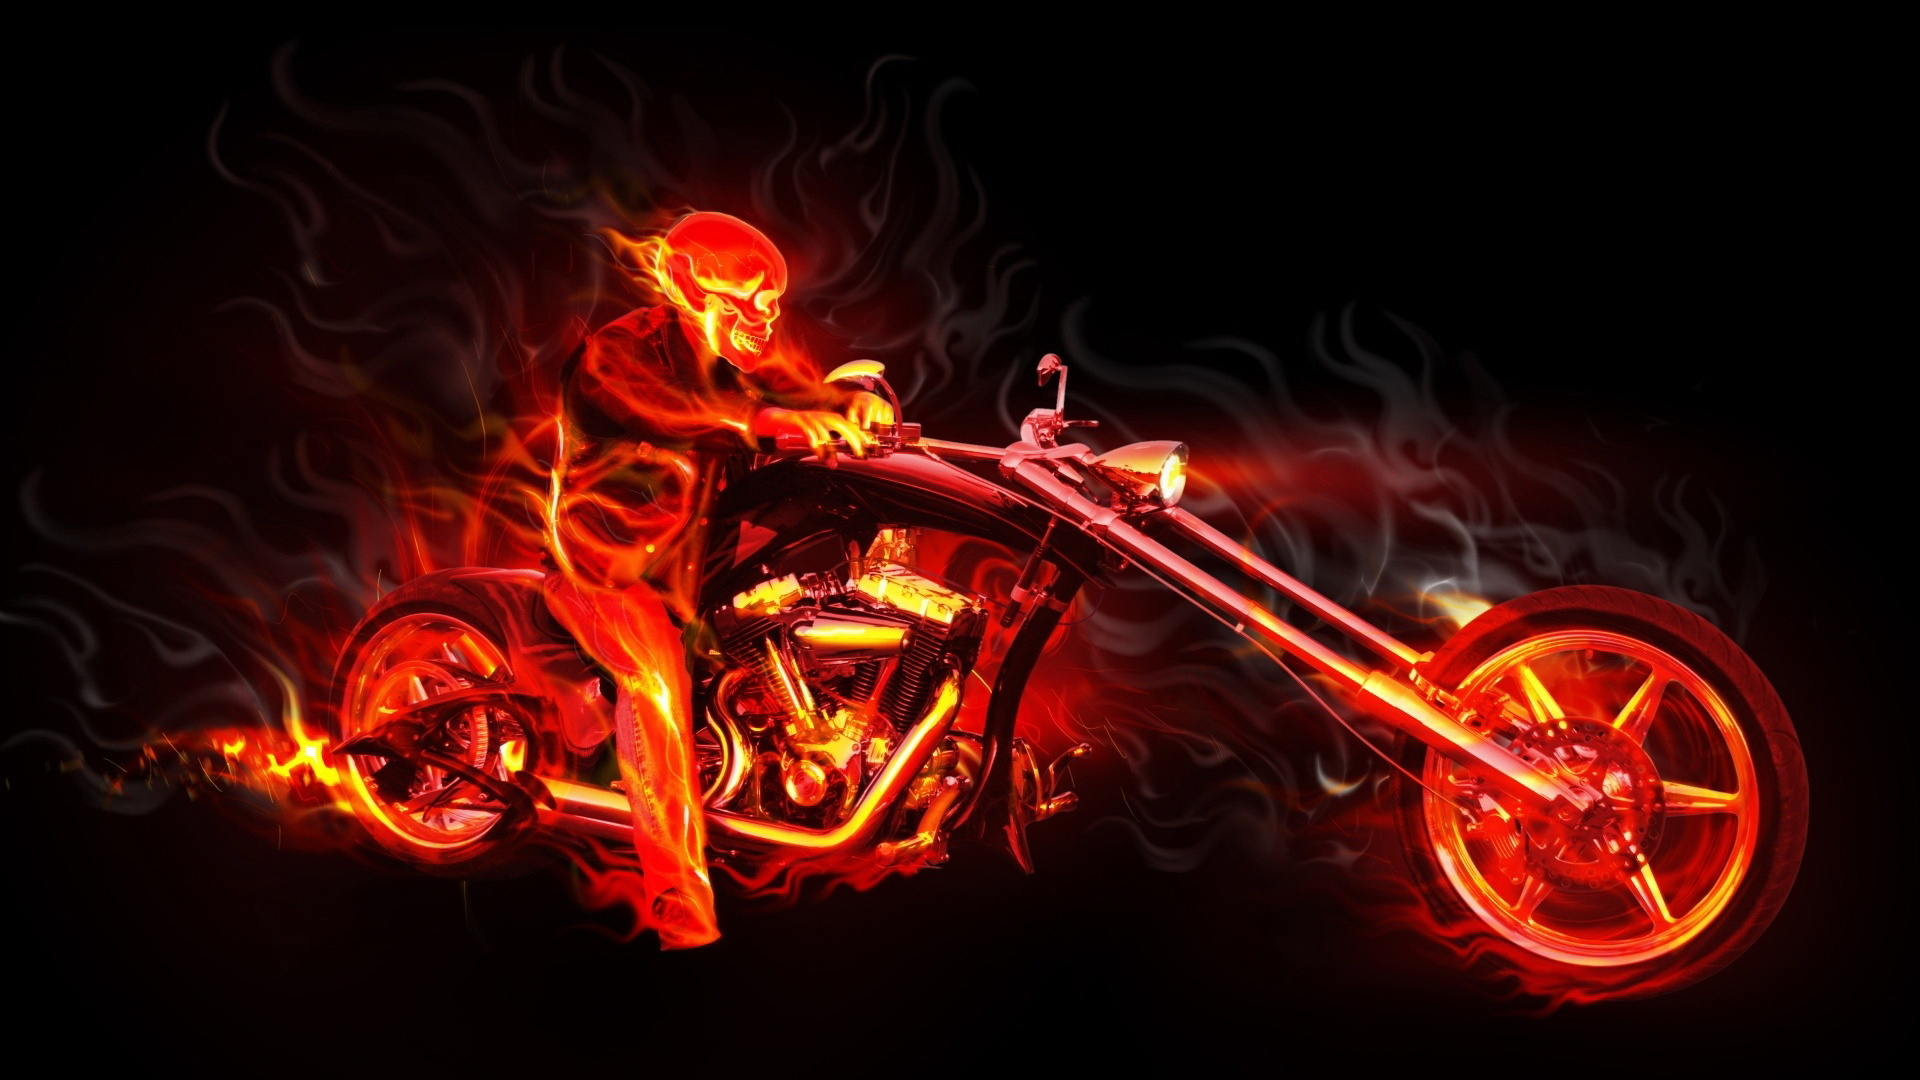 Ghost HD Wallpapers Bike Flame Desktop Wide 1920x1080